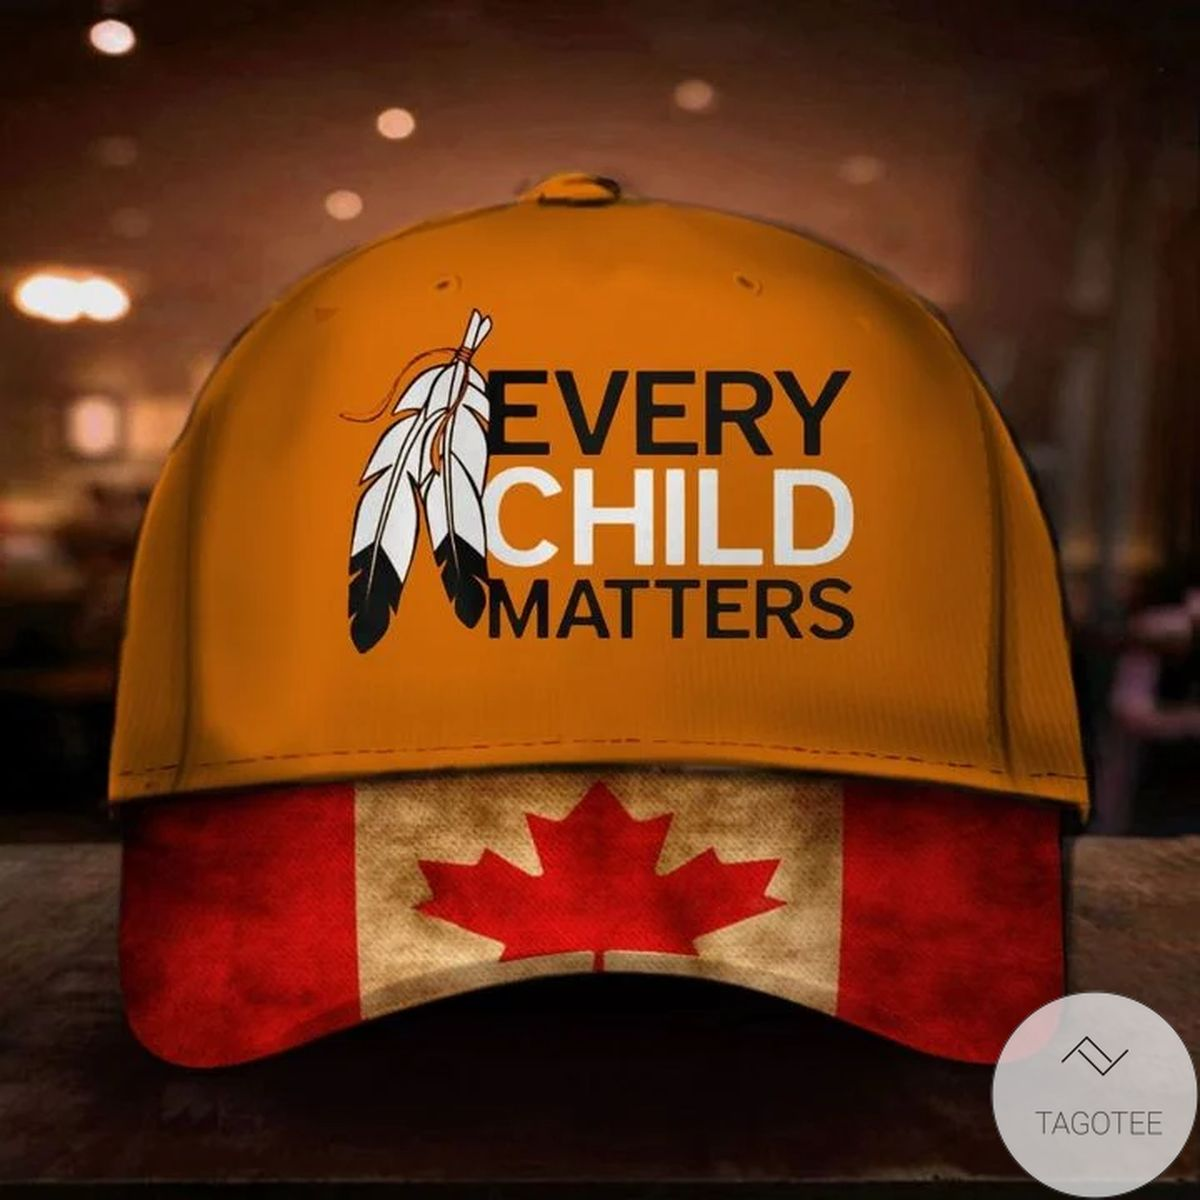 Every Child Matters Hat Canada Flag Orange Shirt Day Residential Schools